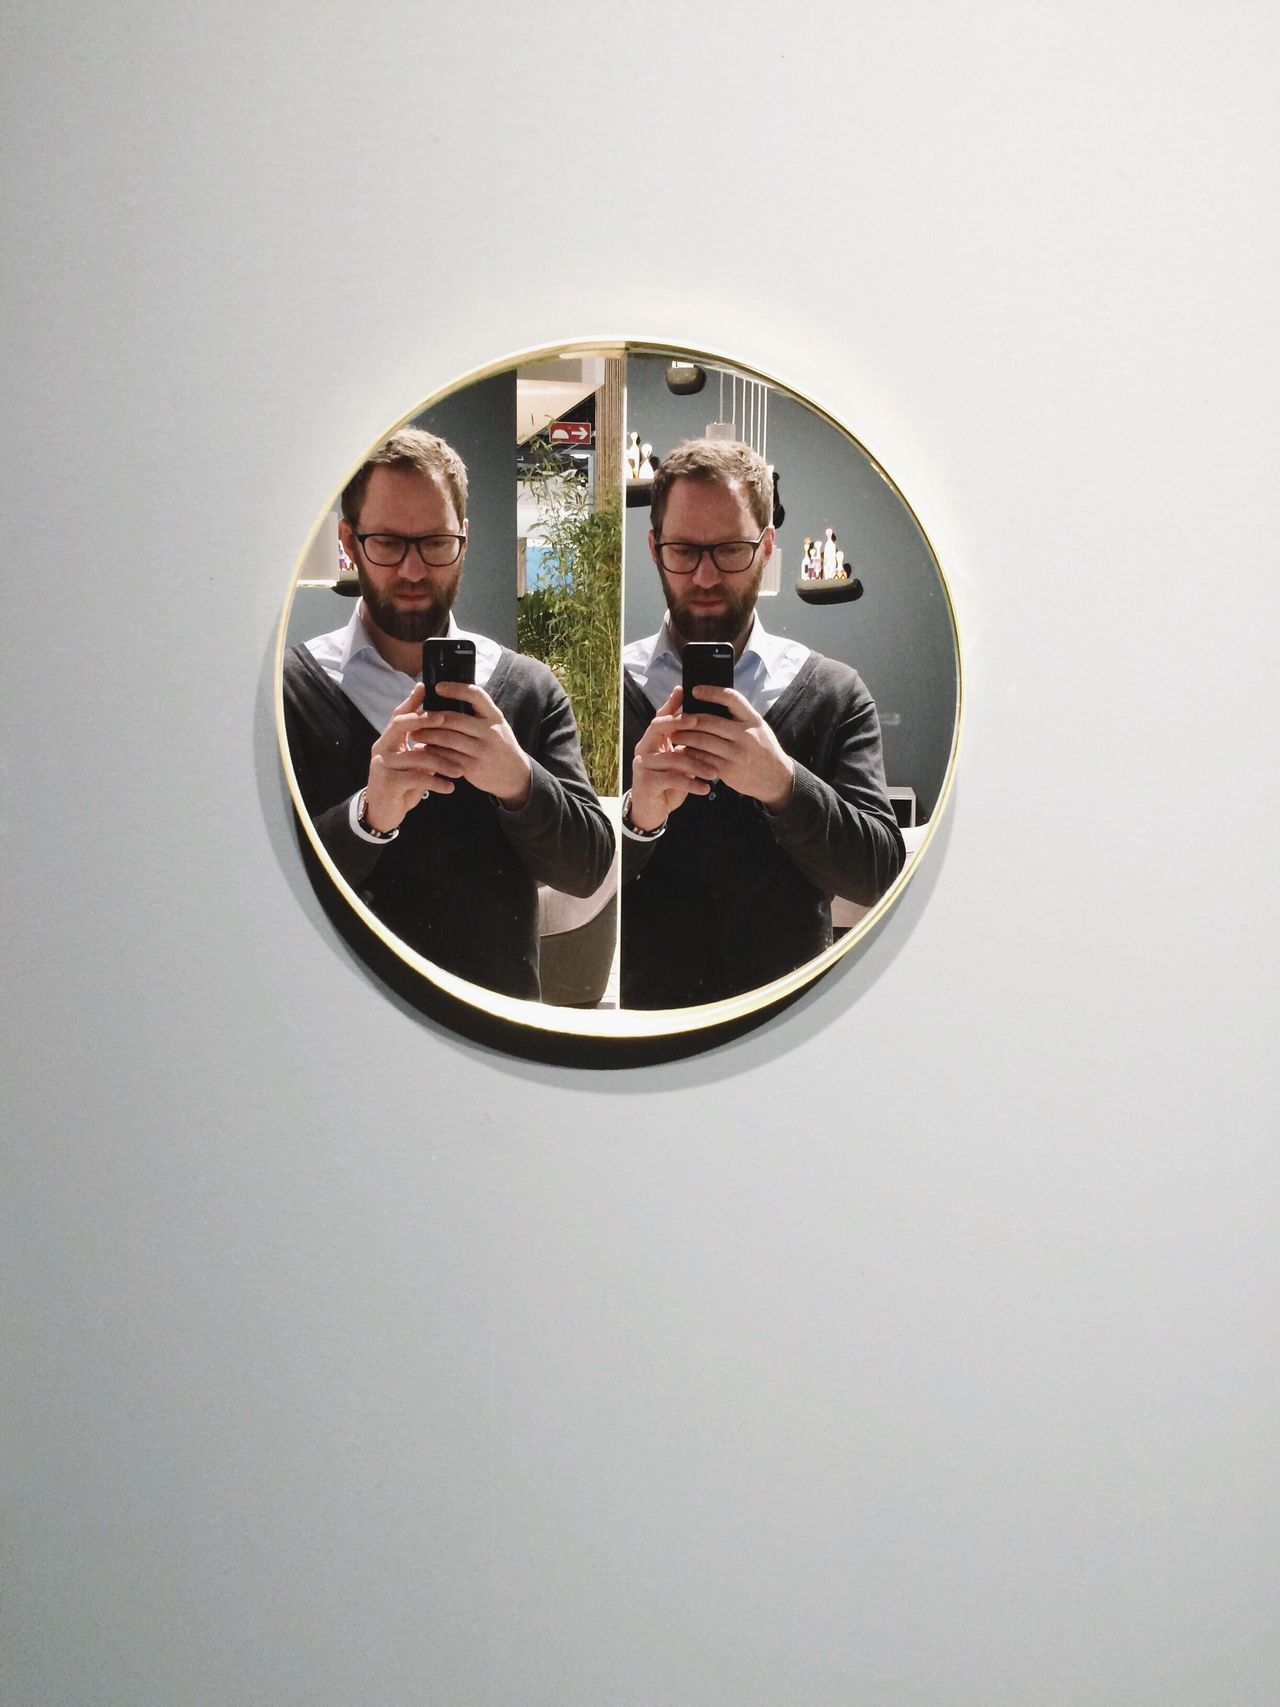 ::)) Photographing Photography Themes Mirror Leisure Activity Reflection Front View Young Adult Circle Frame It! Self Portrait Selfportrait Portrait Two Is Better Than One Reflection Reflection_collection Geometry Memories Geometric Shape The Magic Mission Mobile Conversations